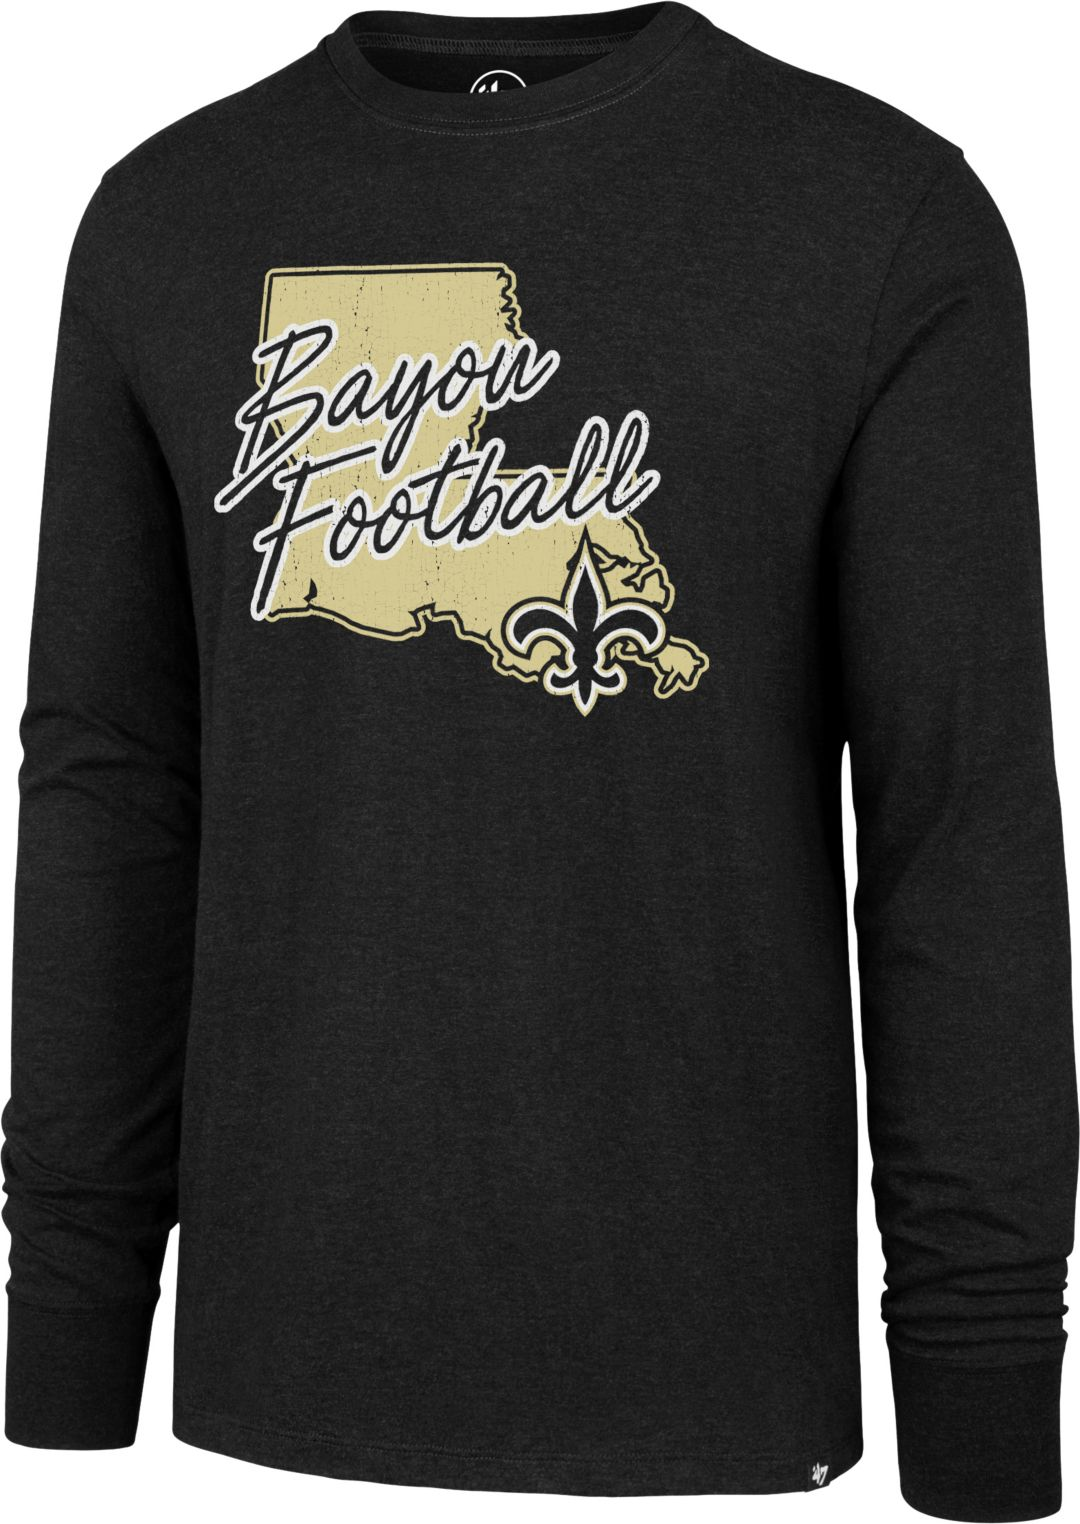 first rate c2822 99732 '47 Men's New Orleans Saints Bayou Football Club Black Long Sleeve Shirt